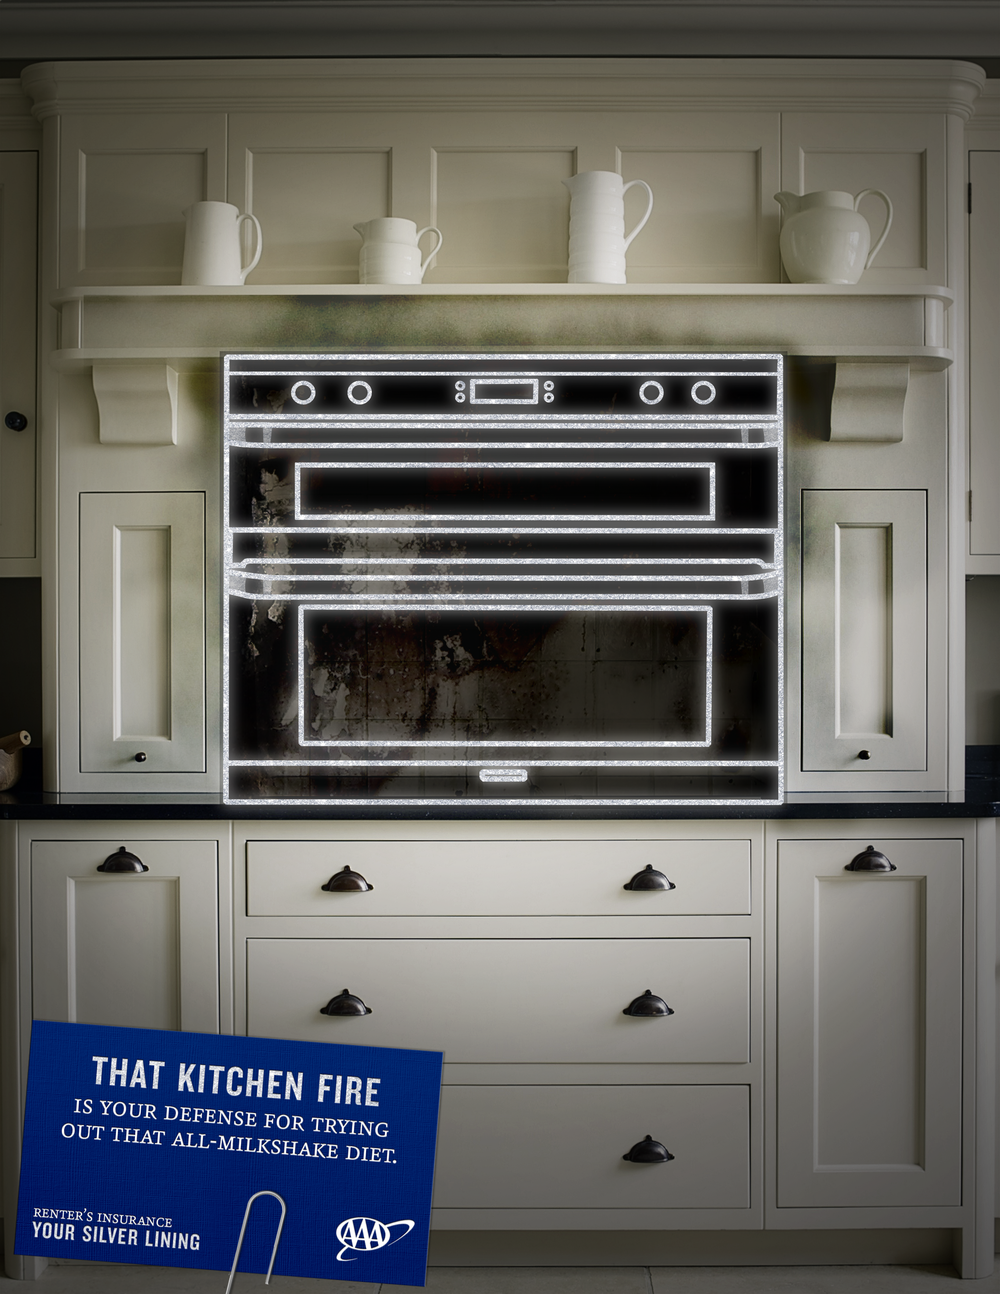 After AAA Kitchen Fire Online Ad